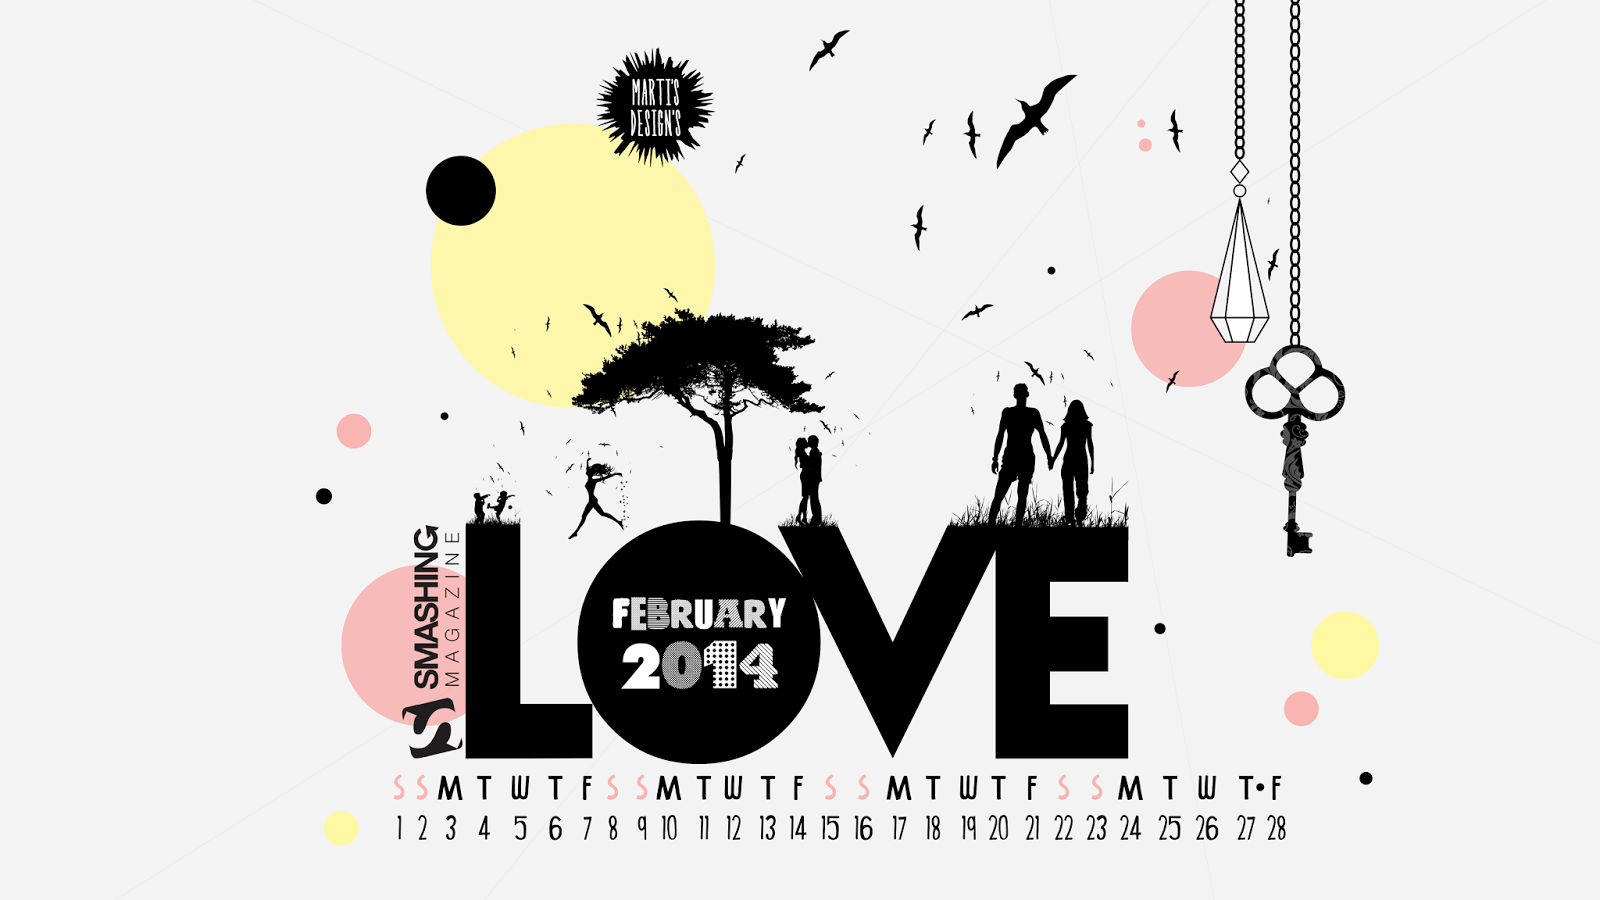 Desktop-Wallpaper-Calendars-February-2014-Full-HD-free-download-Infographic-BLOG-30